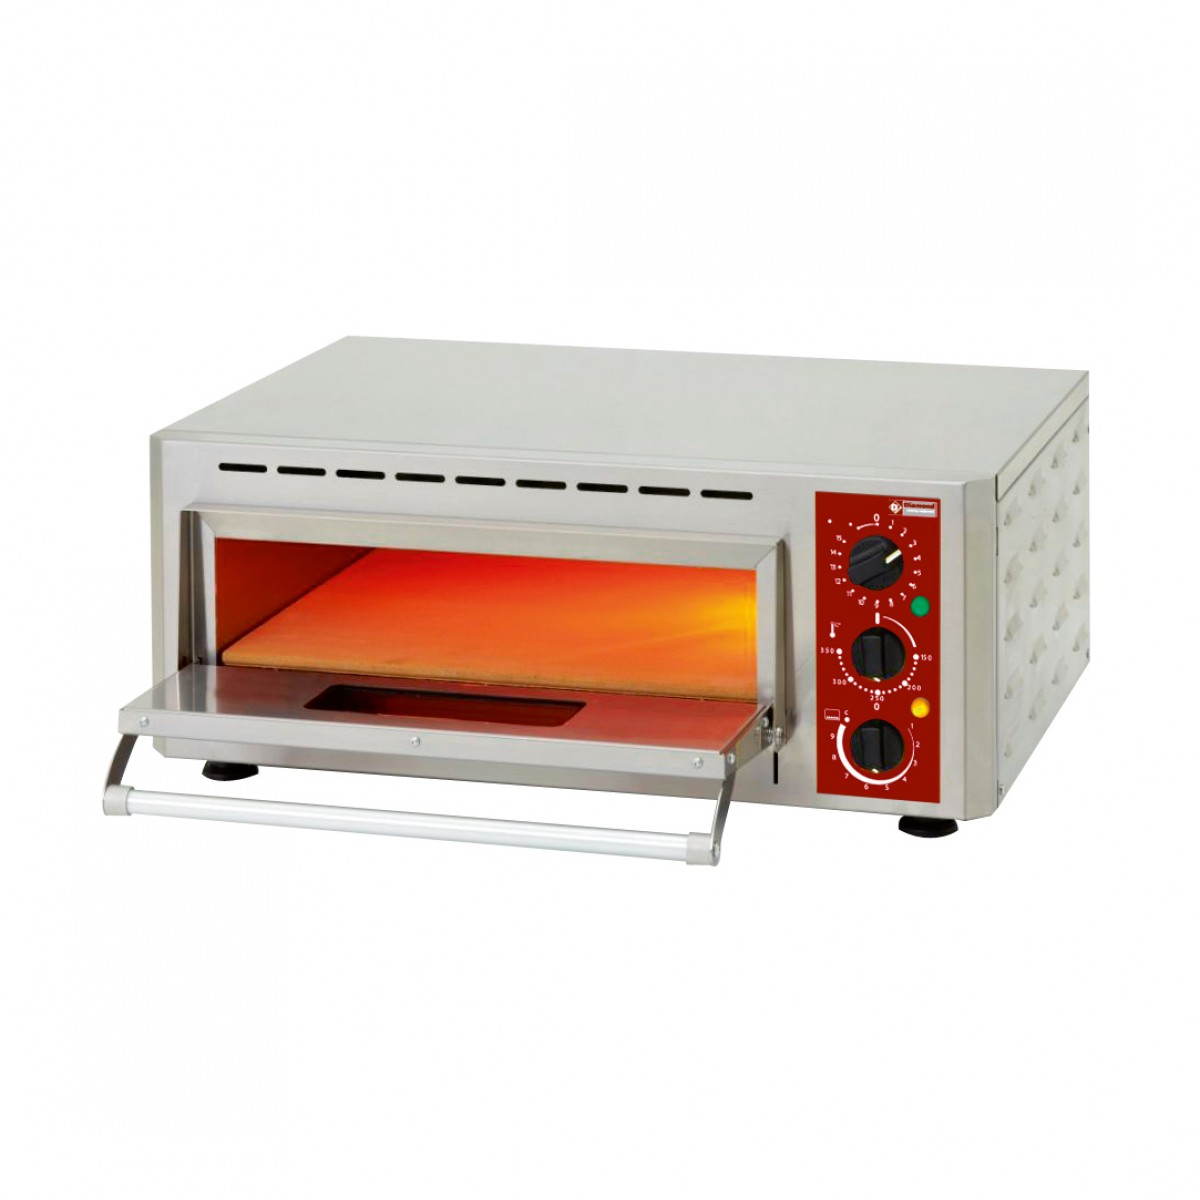 ... & Fast Food / PIZZA-QUICK/43 Electric Infrared Modular Pizza Oven